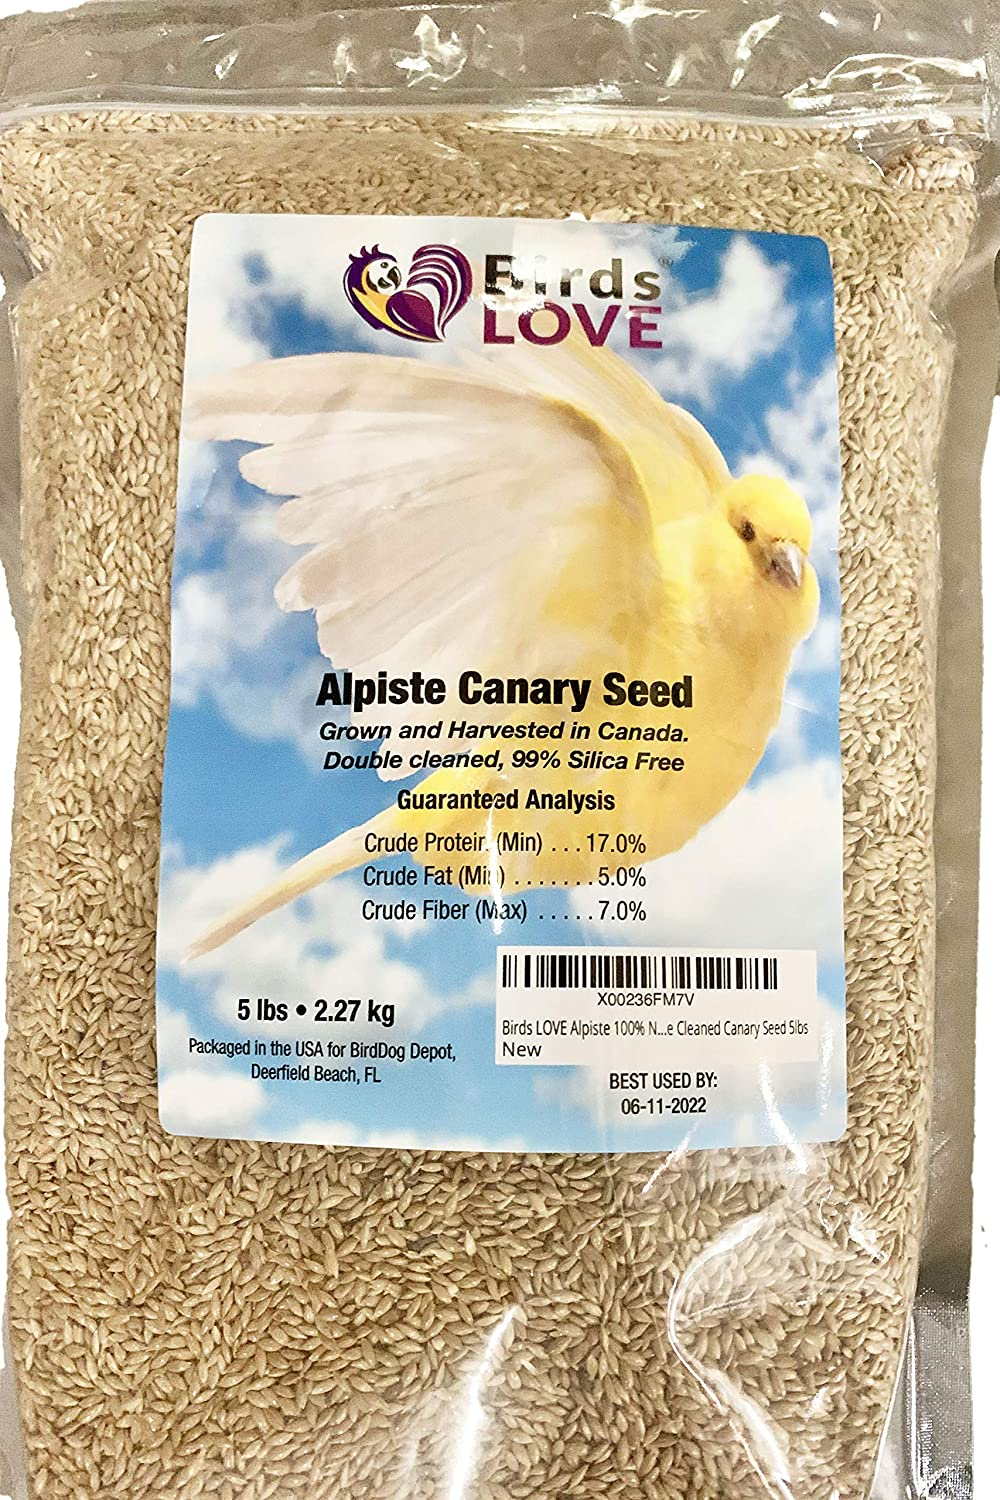 Birds LOVE Alpiste 100% Non-GMO Triple Cleaned Canary Seed 5lbs